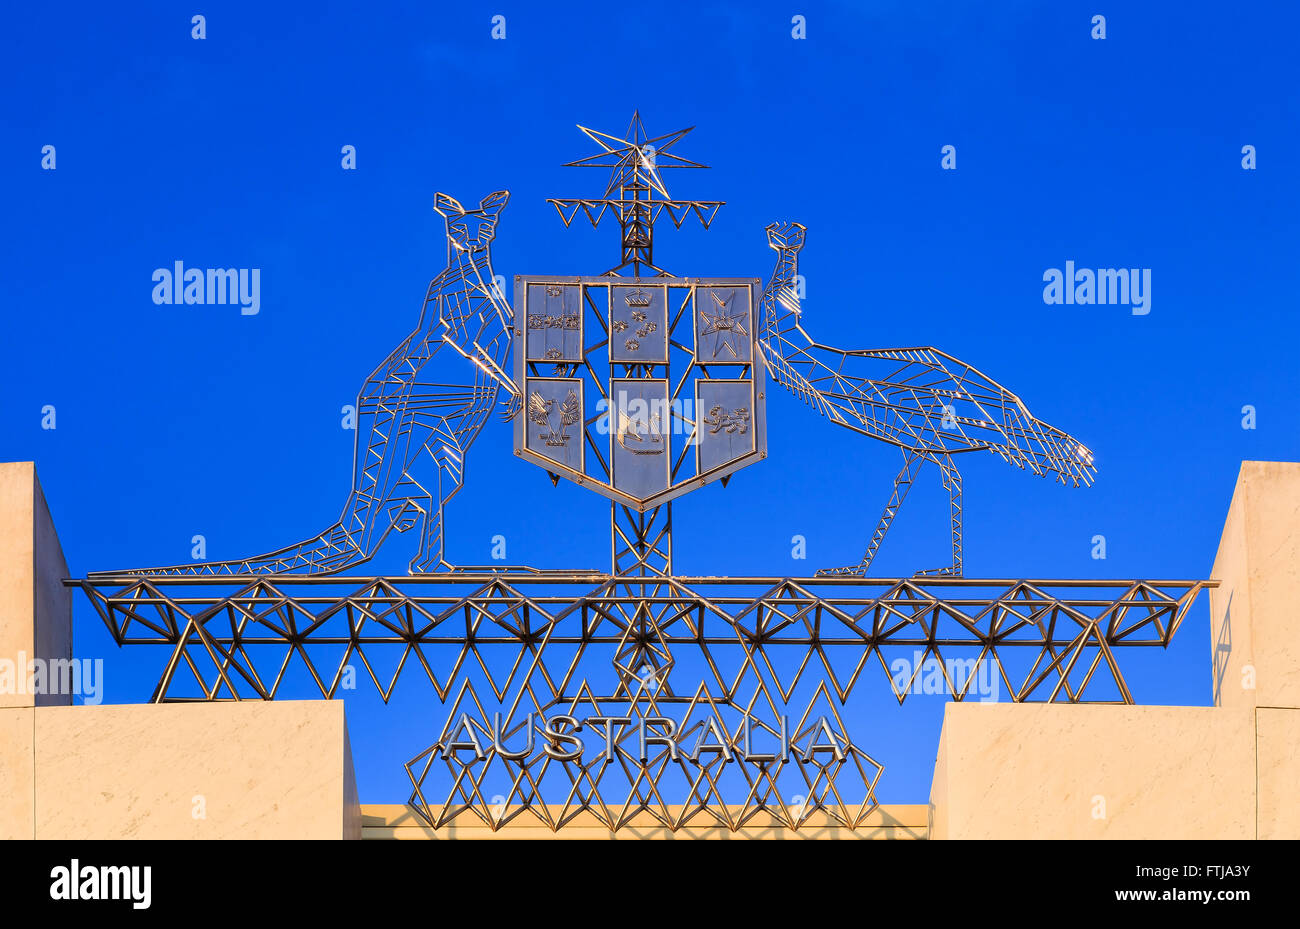 Australian national coat of arms on top of the New parliament house in Canberra against blue sky on a sunny day - Stock Image